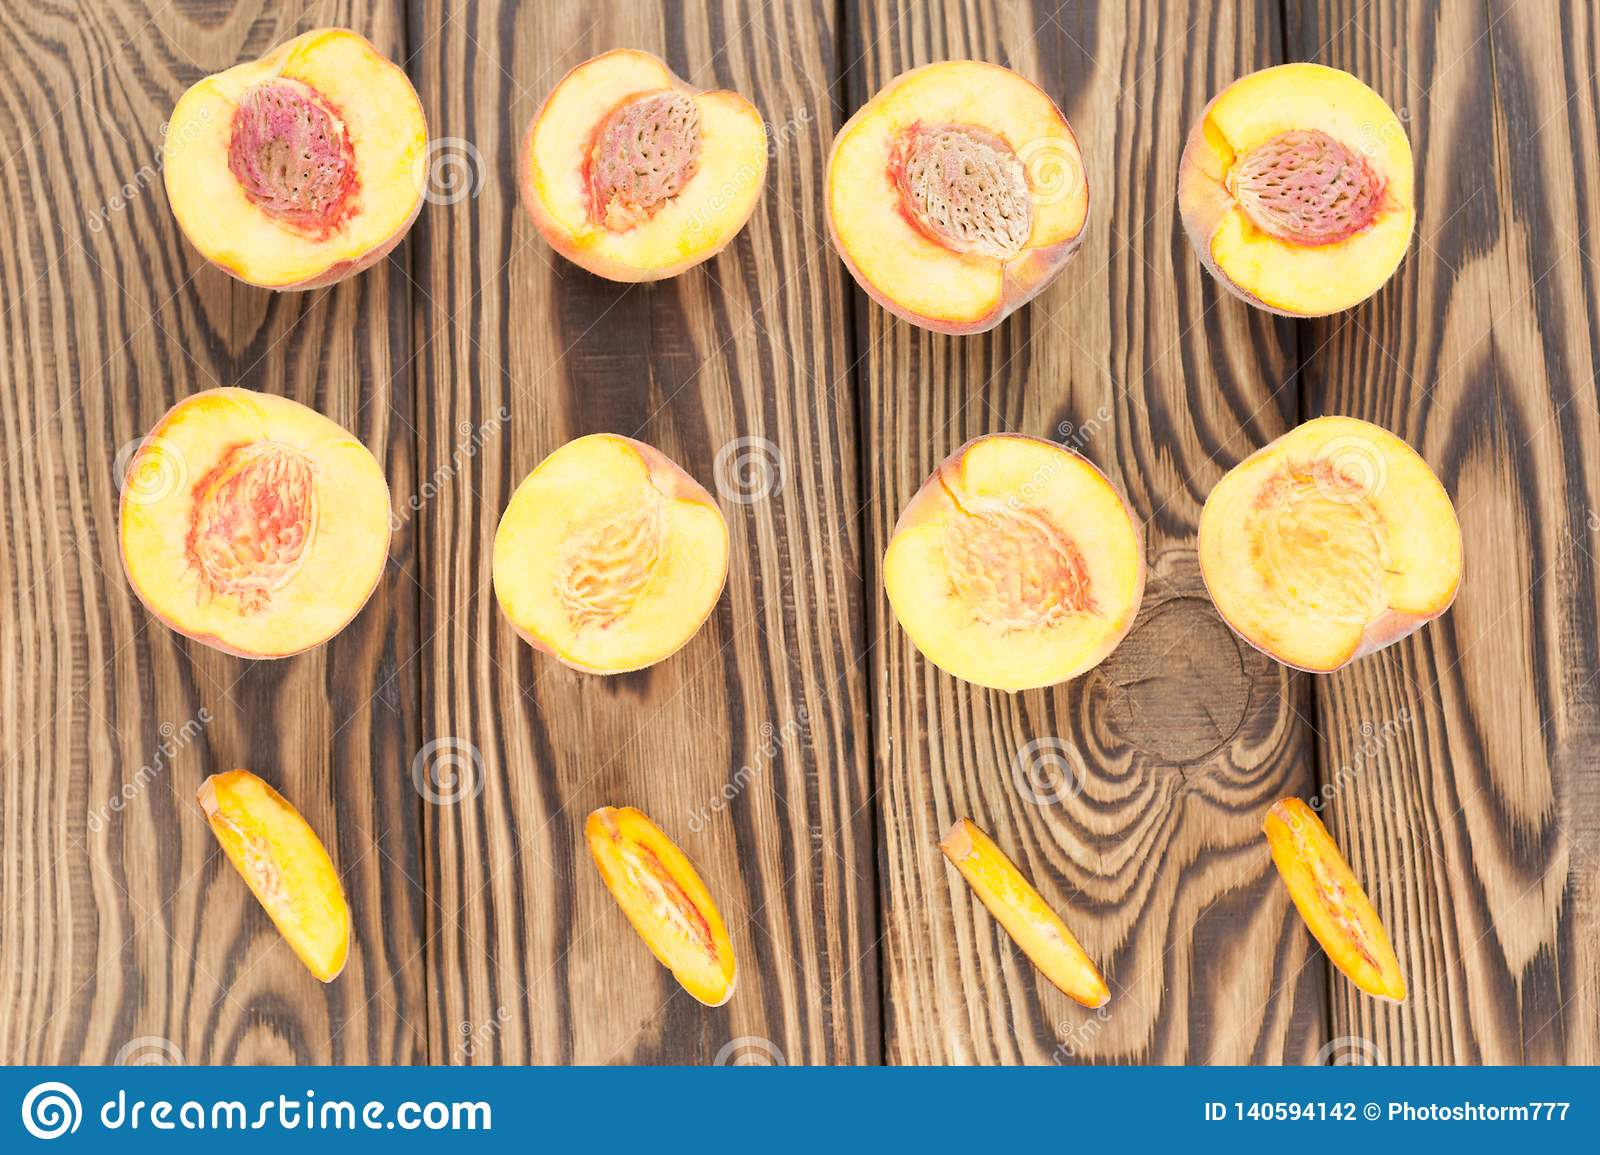 Rows of halves of peach and slices of peach